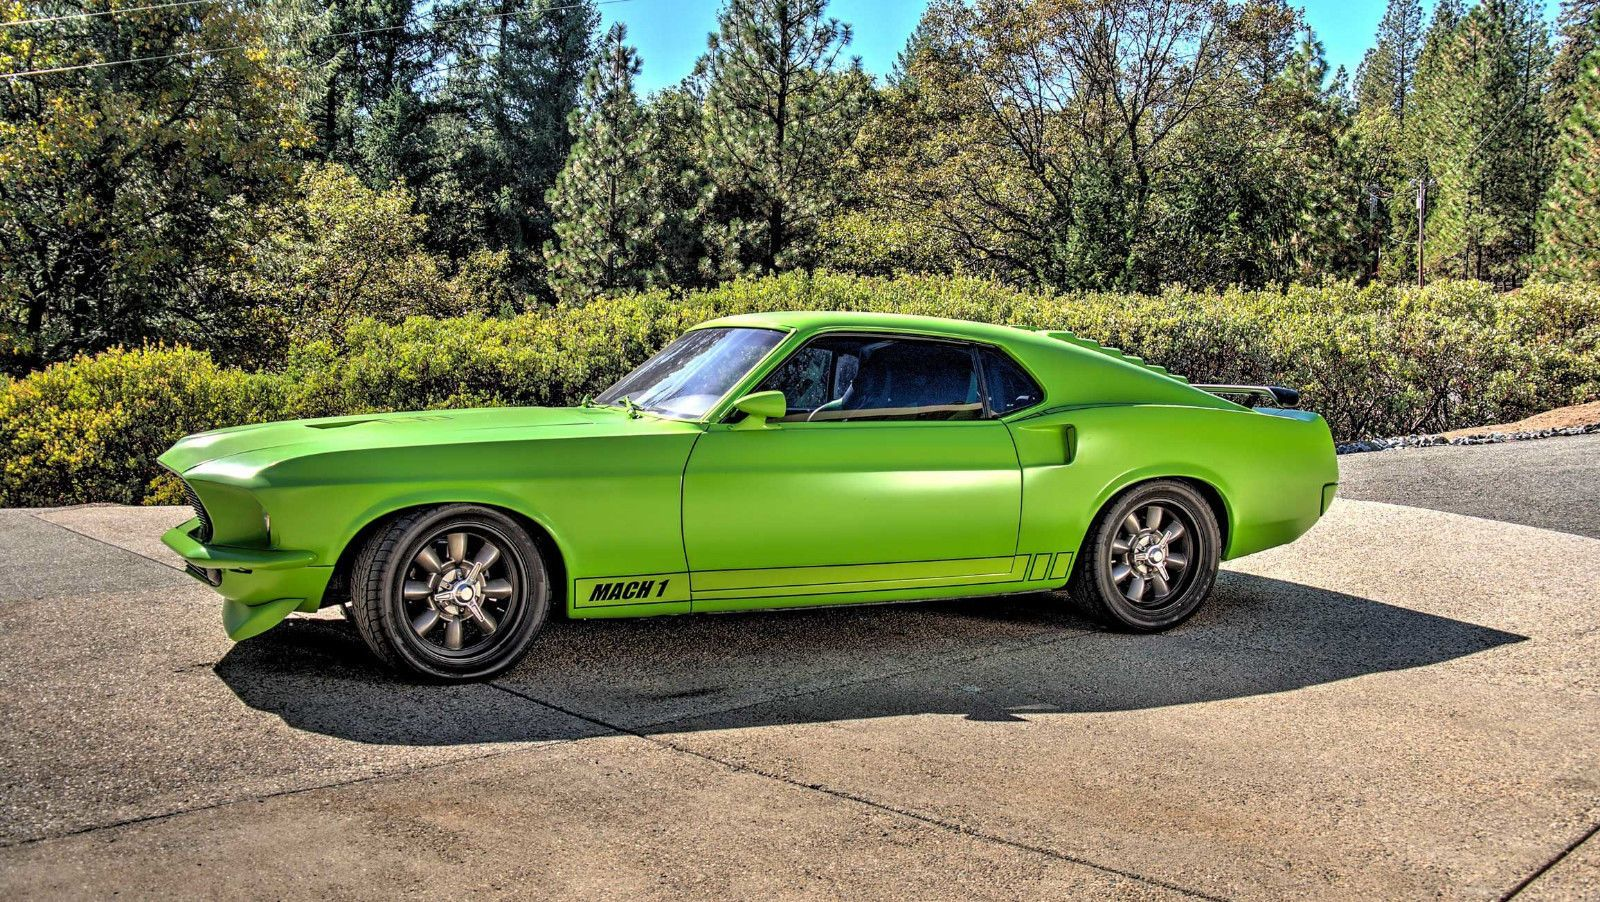 Image Of 1969 Ford Mustang Mach 1 Production Numbers Gulfstream Aqua 134184 Rk Motors Classic And Performance Cars